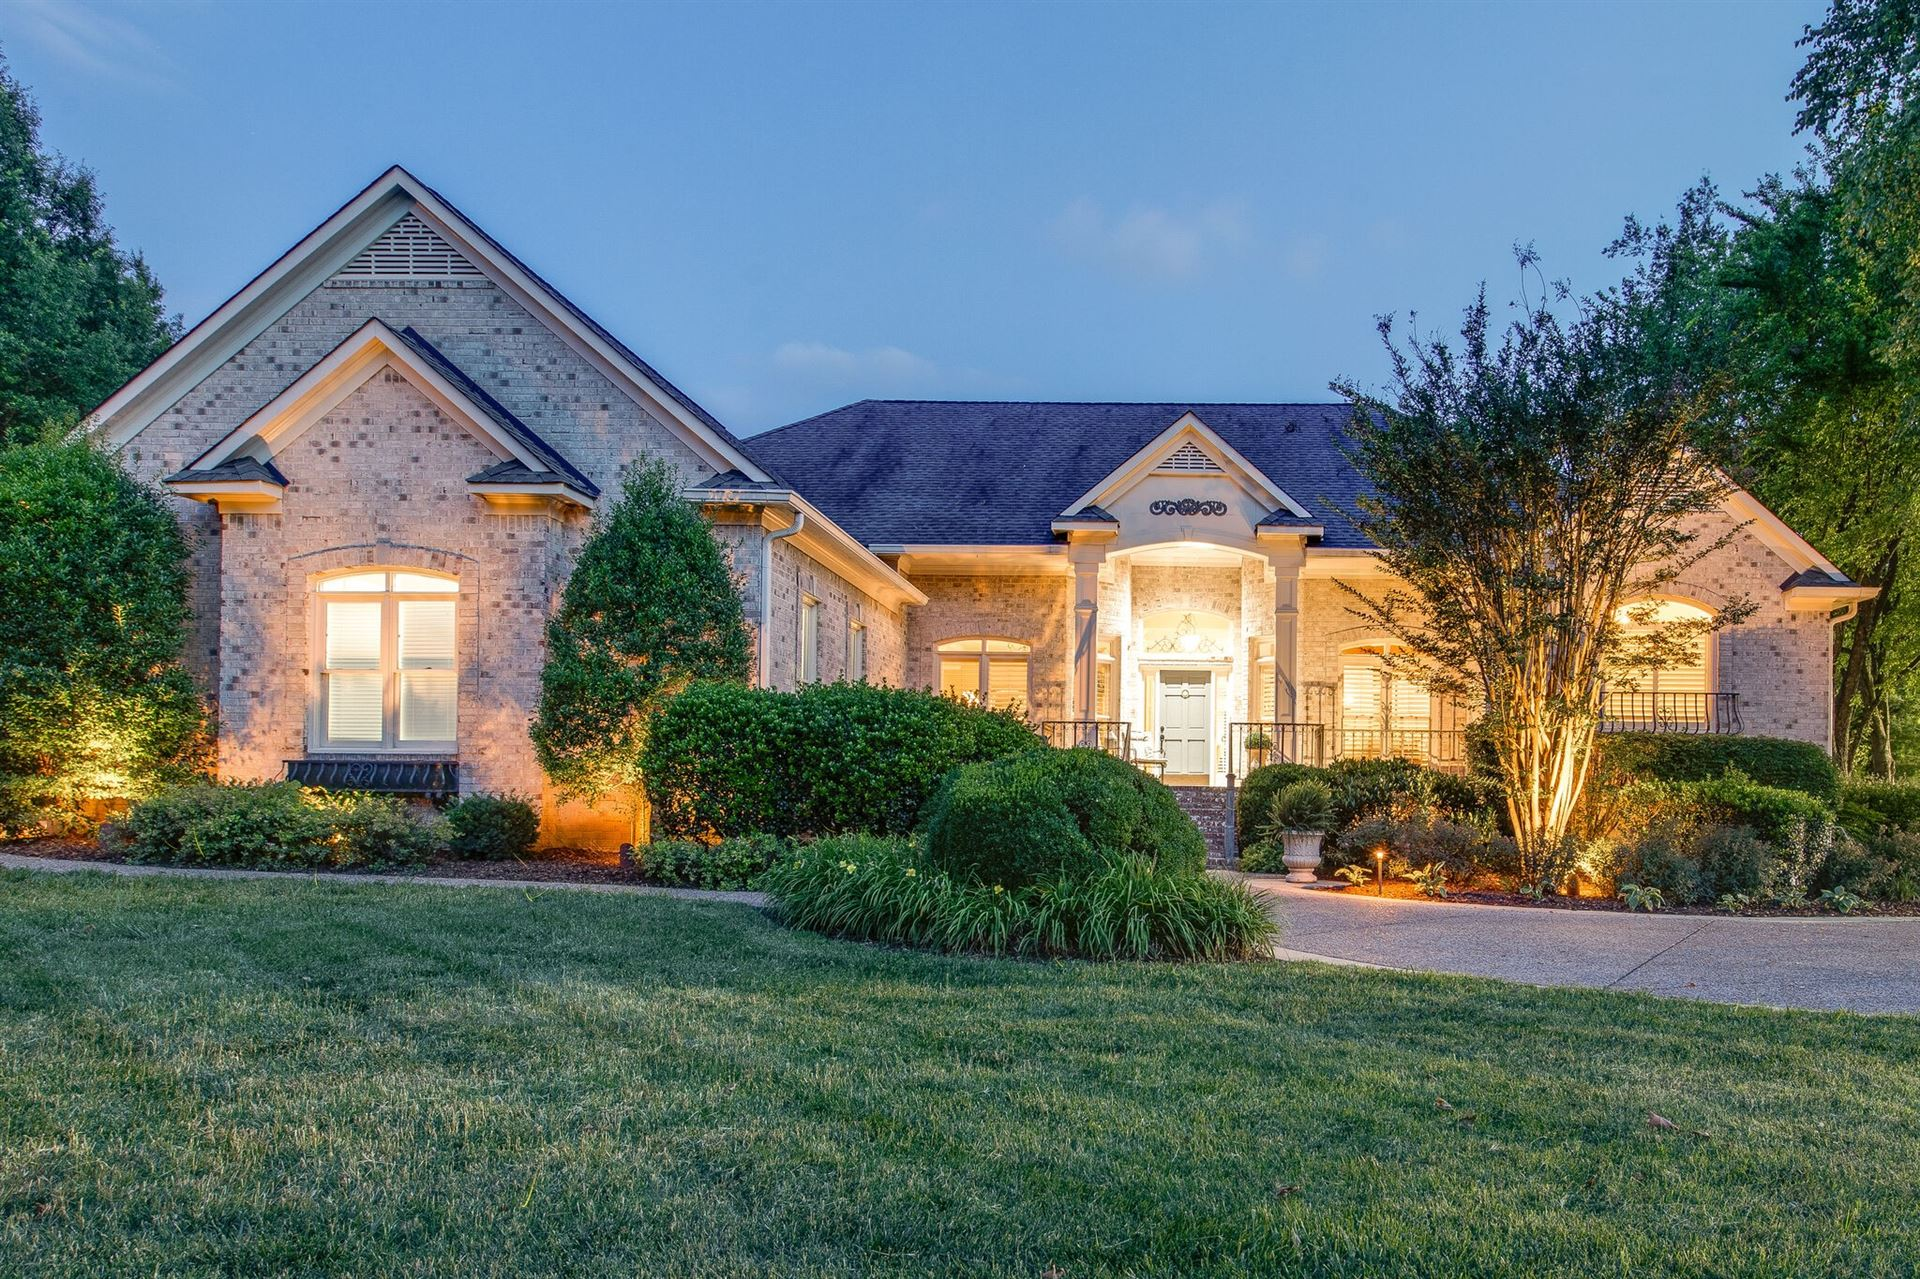 Photo of 417 Hope Ave, Franklin, TN 37067 (MLS # 2163611)